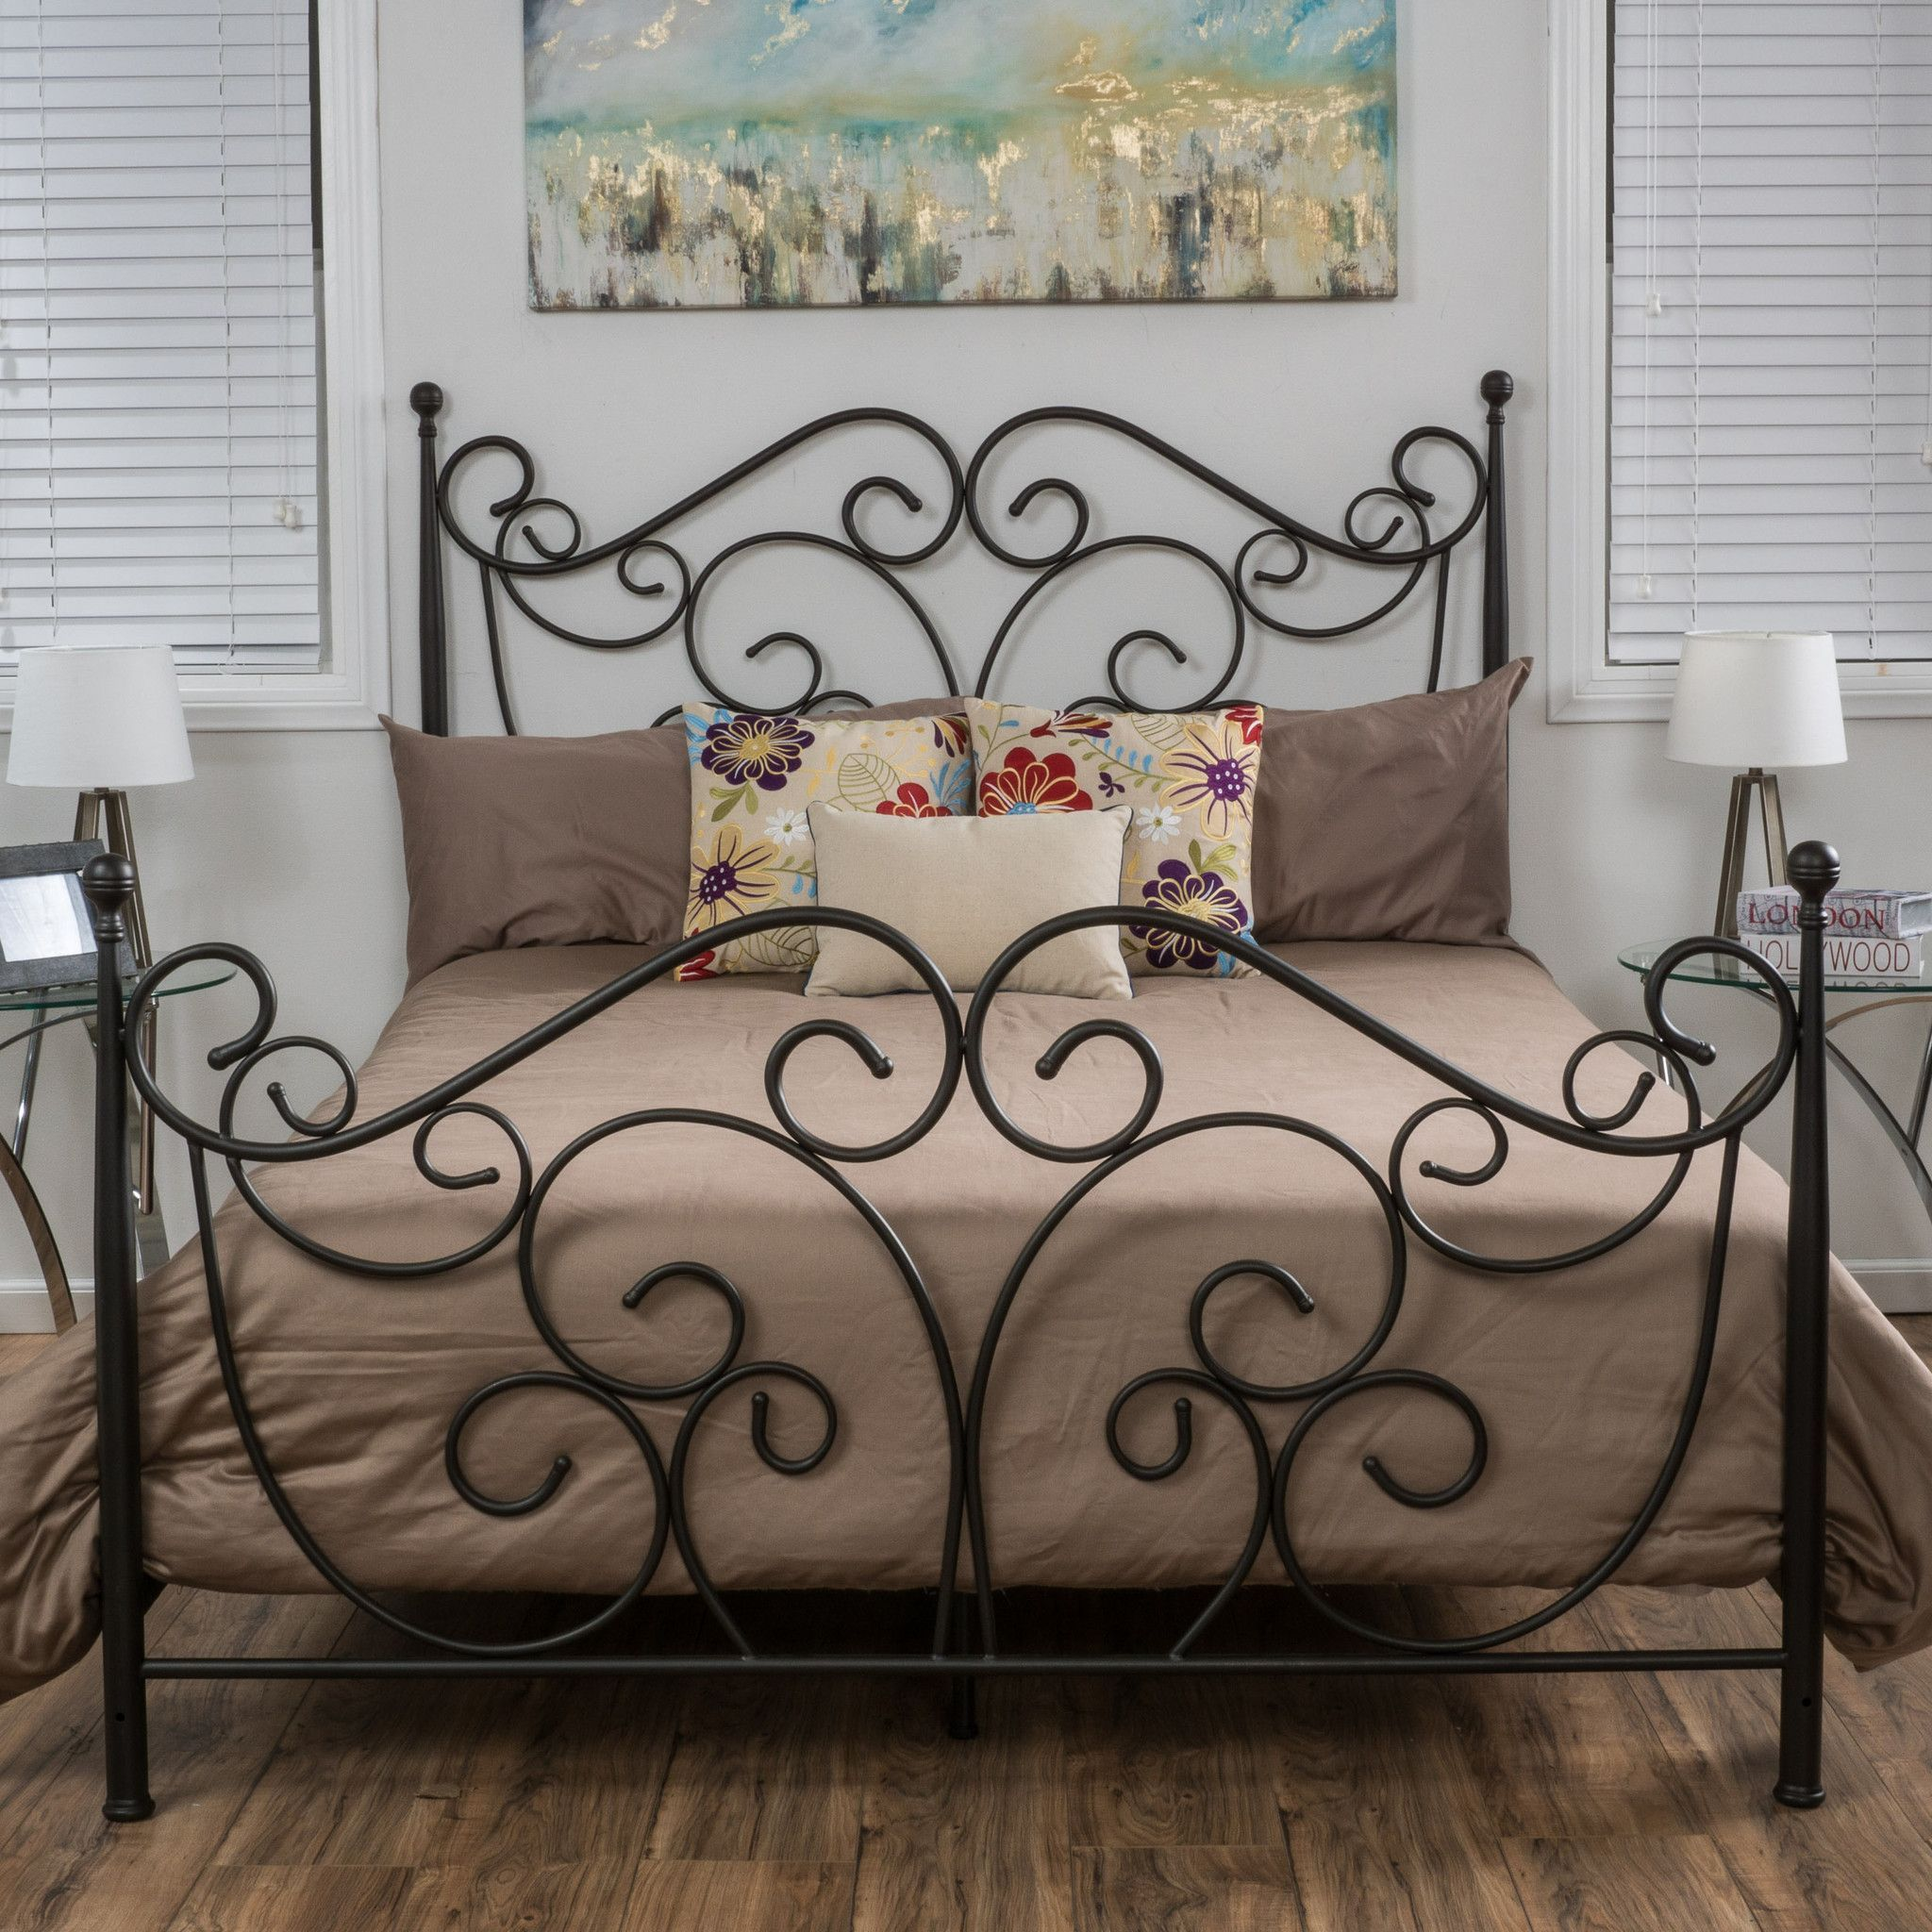 Denise Austin Home Horatio Metal Bed Frame | Camas, Espacios y Comprar